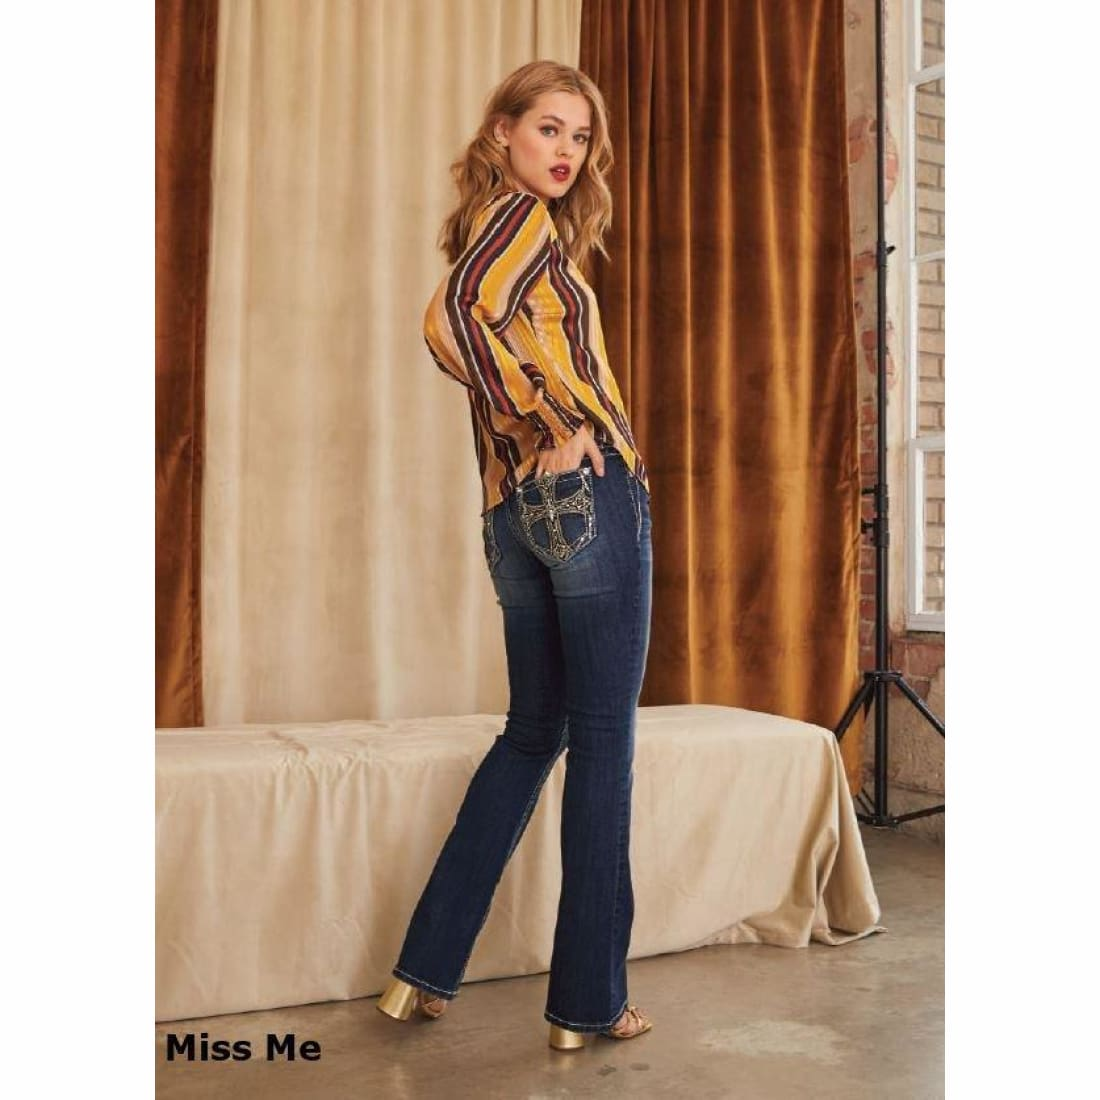 Miss Me Chloe Bootcut Jeans Style# M3473B / K985 Jeans